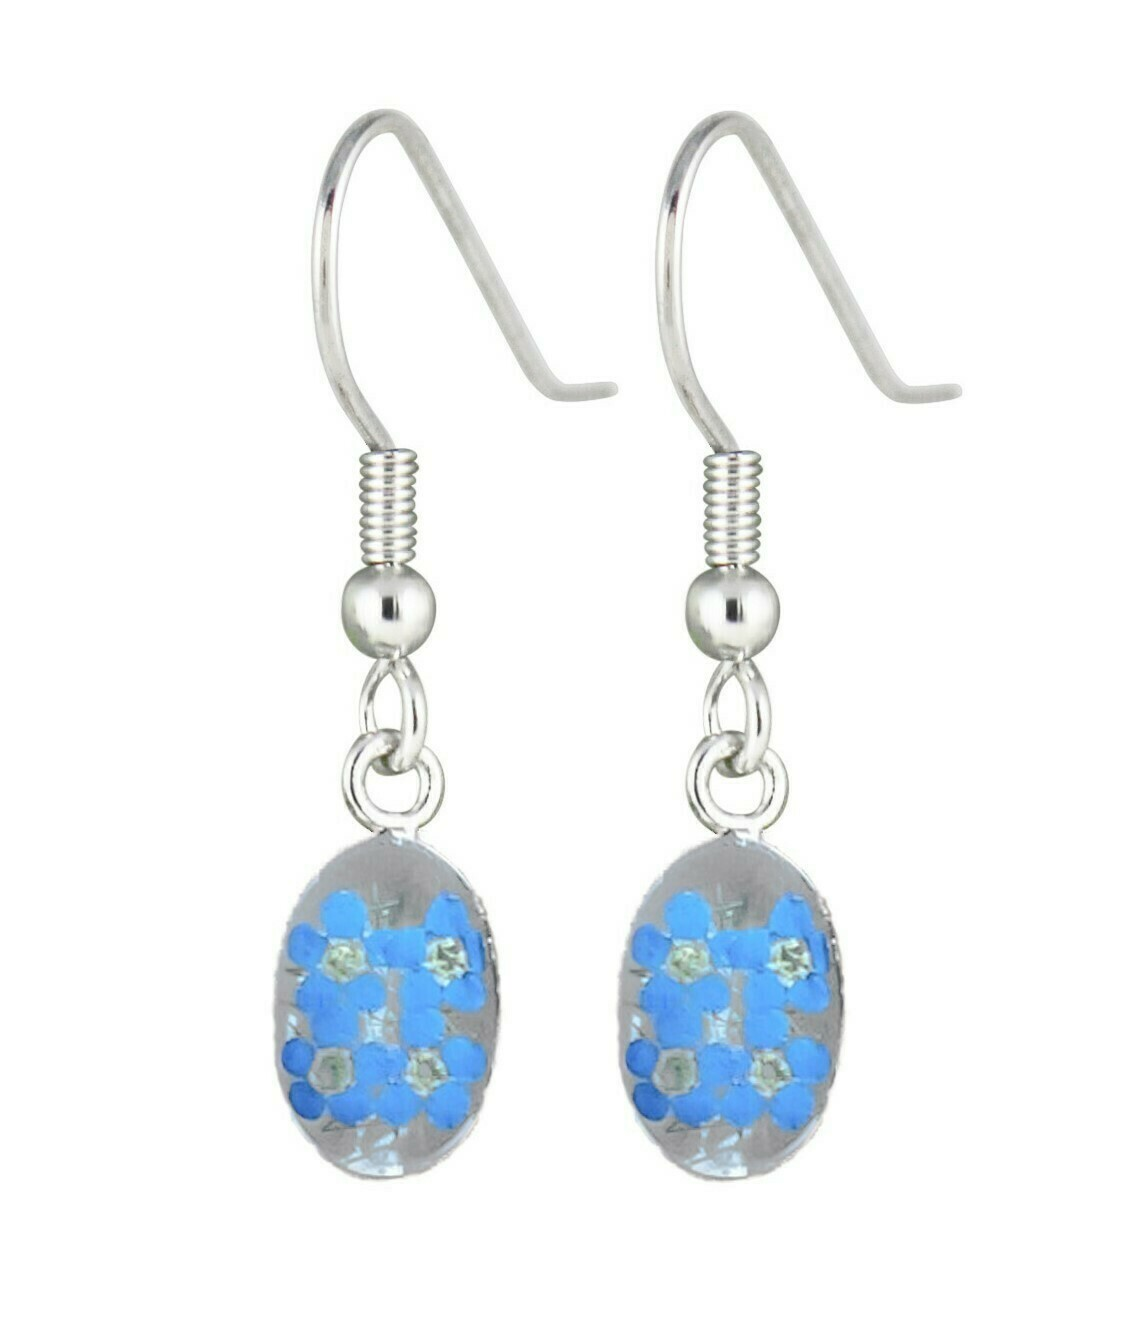 Real Forget-Me-Not, Oval Earrings, White Backgroud